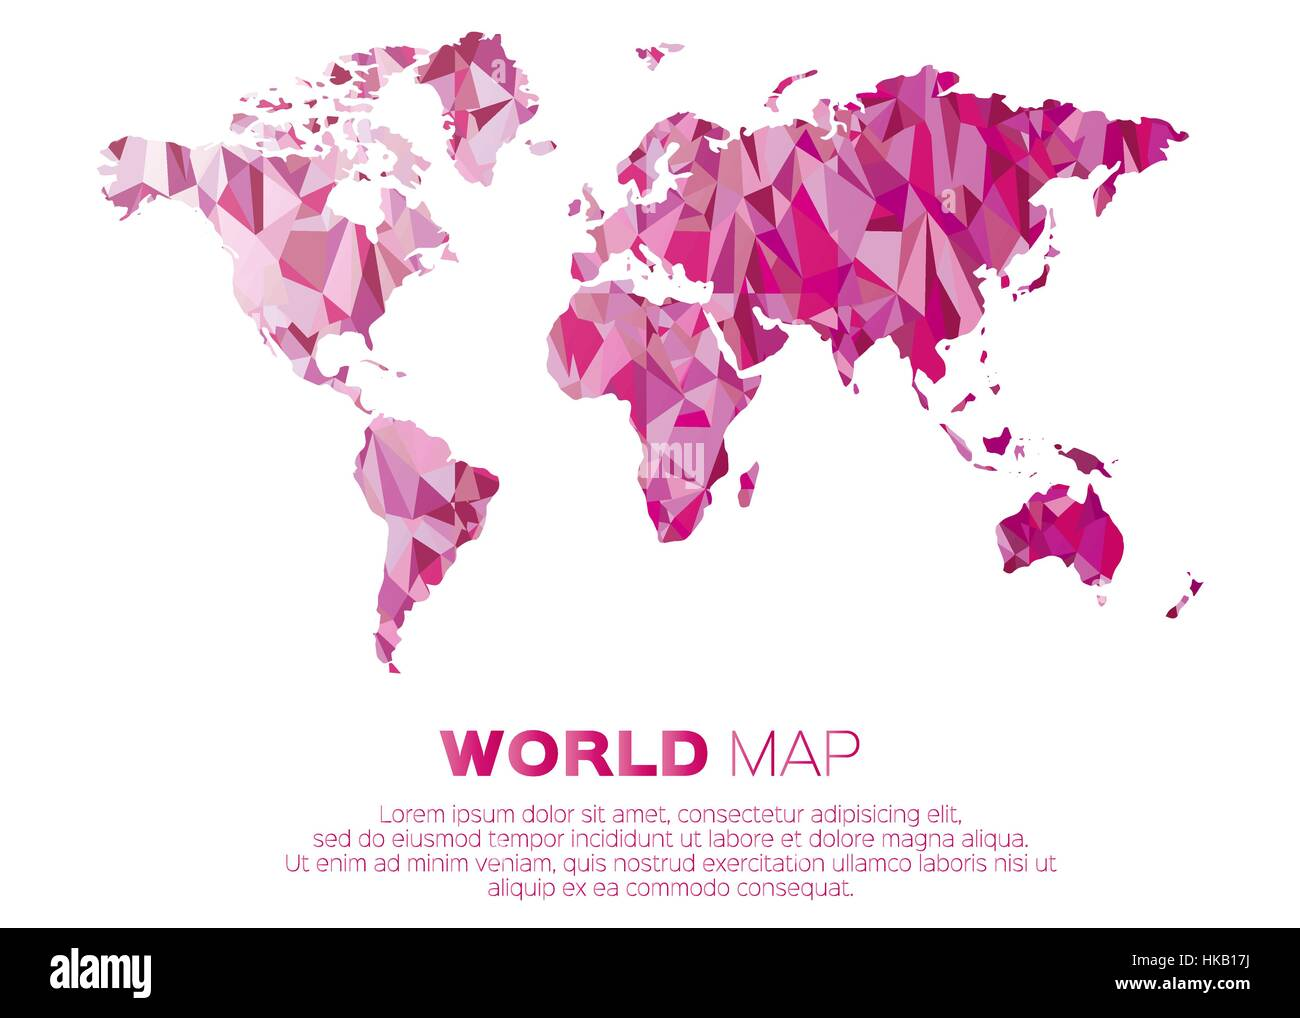 World map background in polygonal style abstract origami color map world map background in polygonal style abstract origami color map design gumiabroncs Image collections